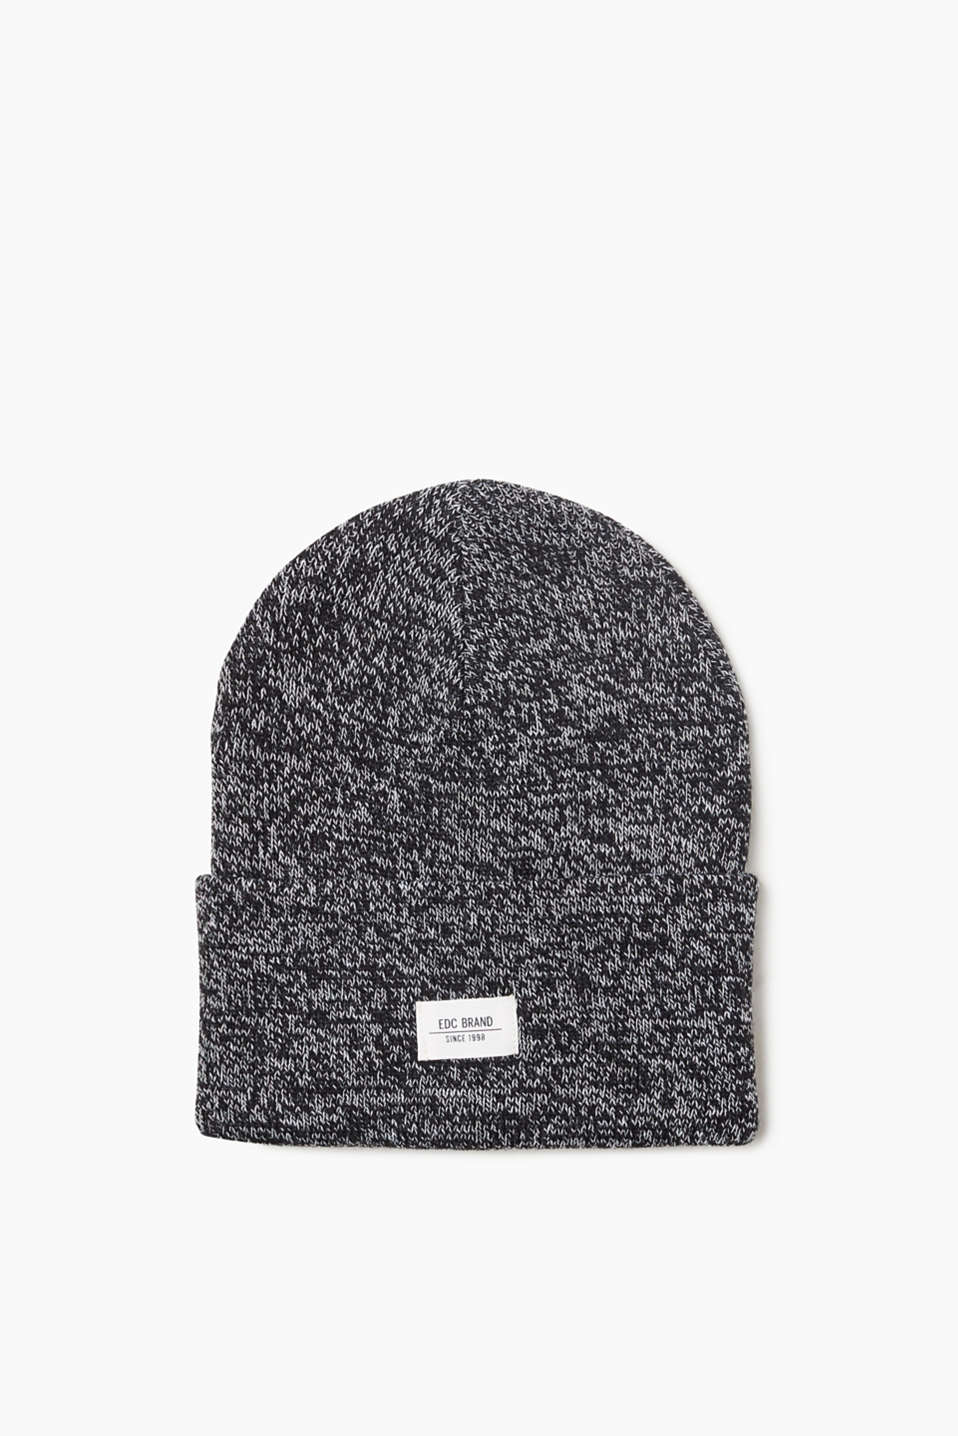 An urban classic! Beanie in high-quality ribbed knit with a logo appliqué